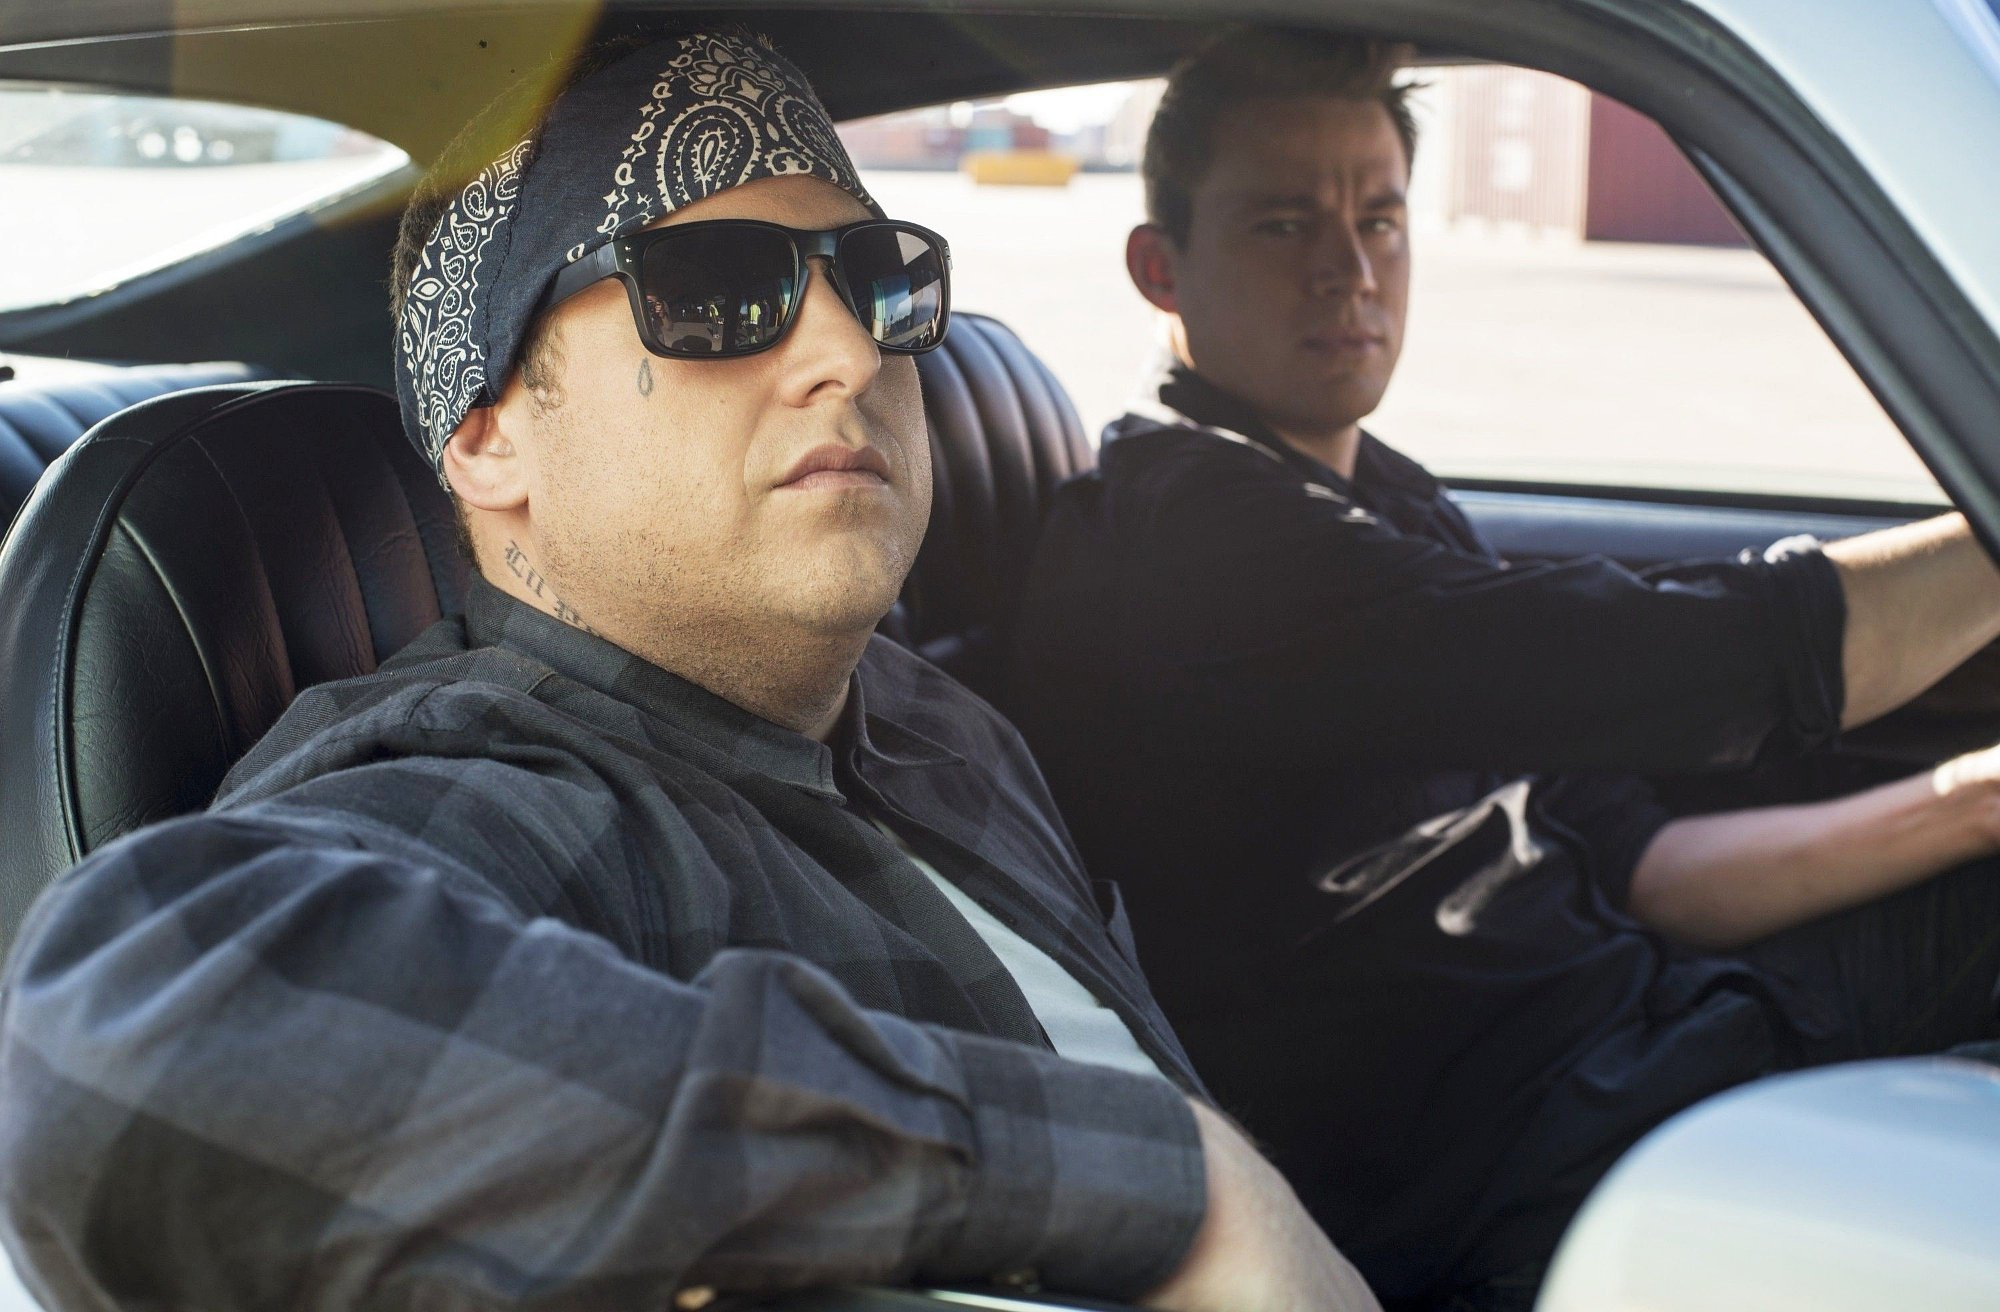 22 Jump Street | Redbrick | University of Birmingham21 Jump Street Wallpaper Jonah Hill